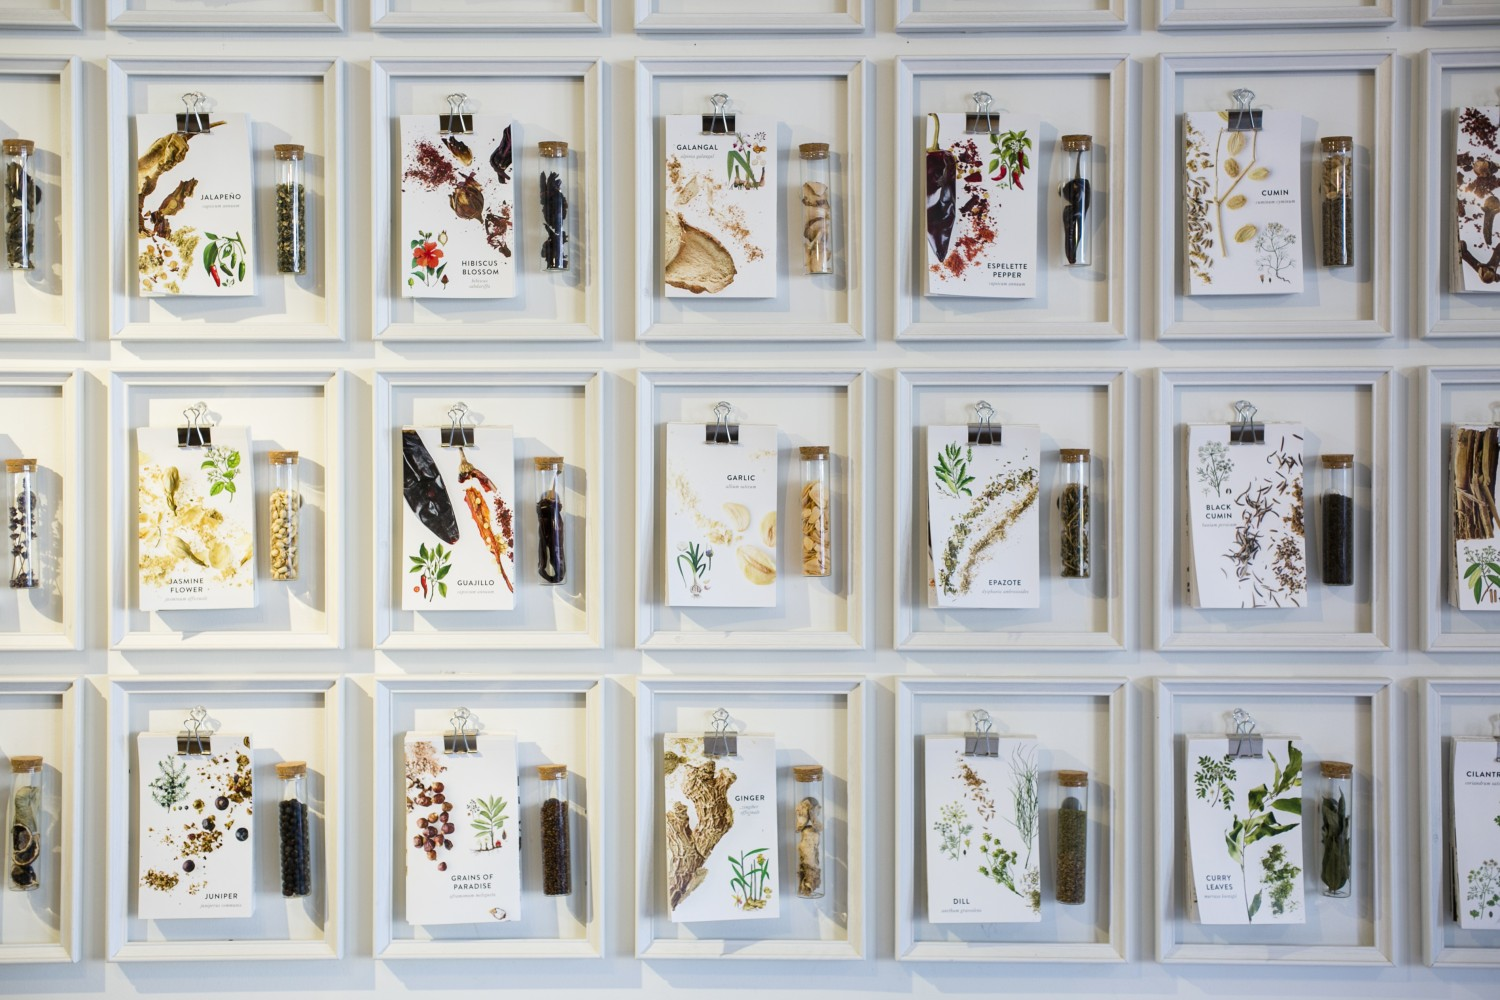 Illustrations of spices on display at La Boîte. (Samira Bouaou/Epoch Times)